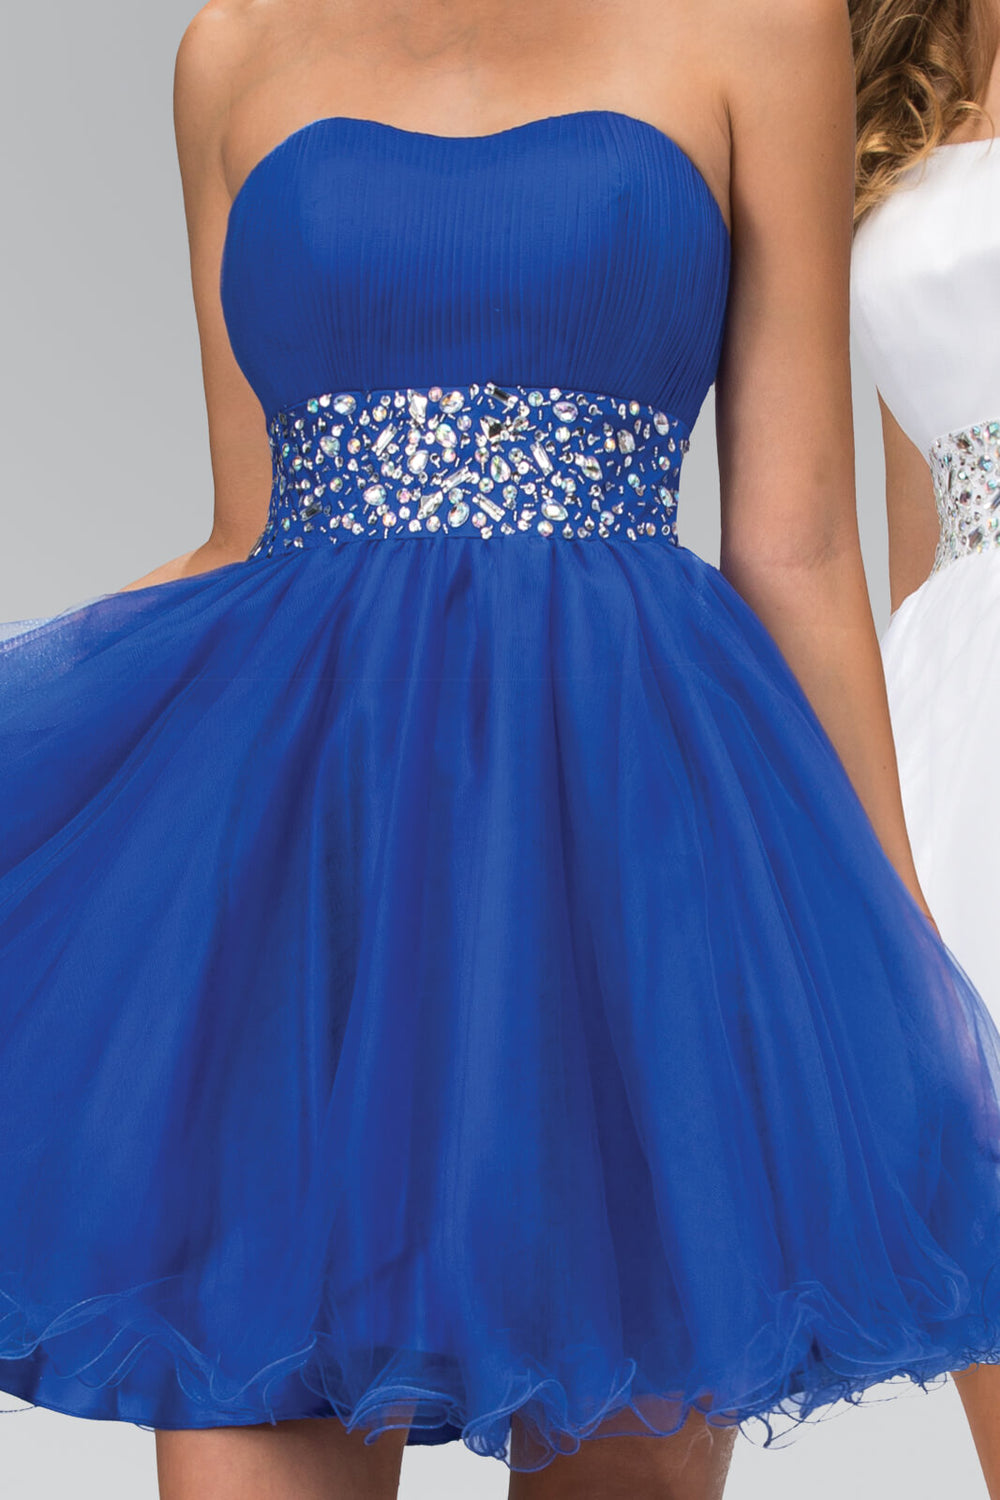 Strapless Sweetheart Prom Short Dress - The Dress Outlet Royal Blue